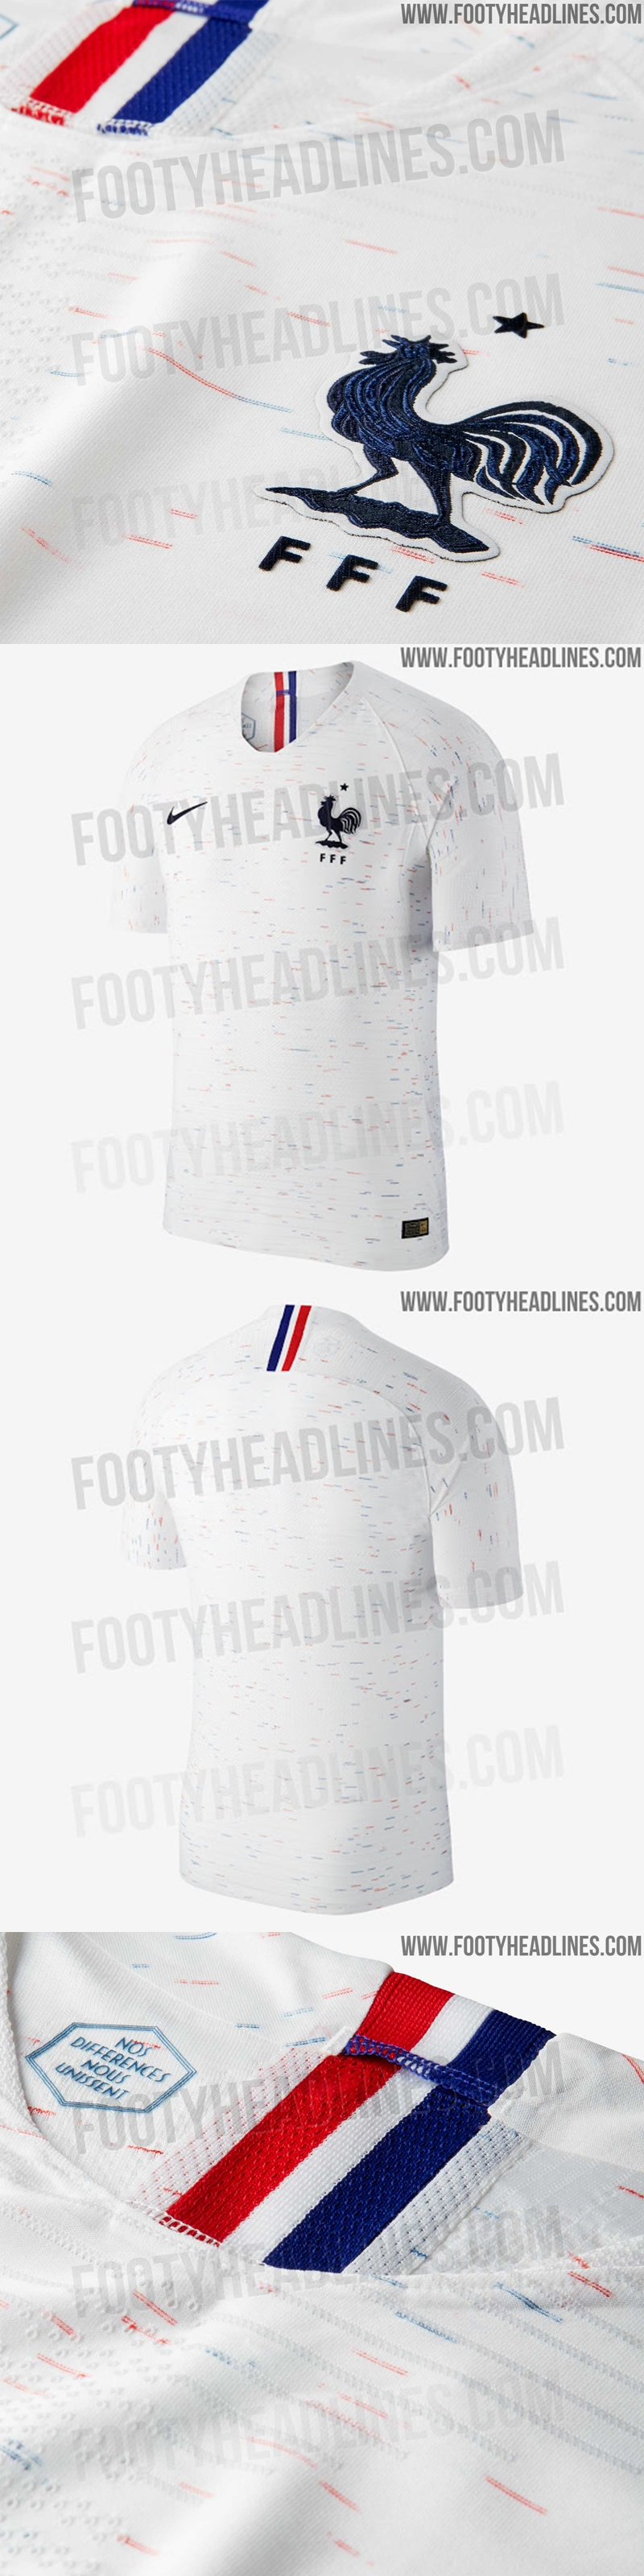 new concept 8afaf 2be9c France's kits for the World Cup have been leaked   JOE.co.uk